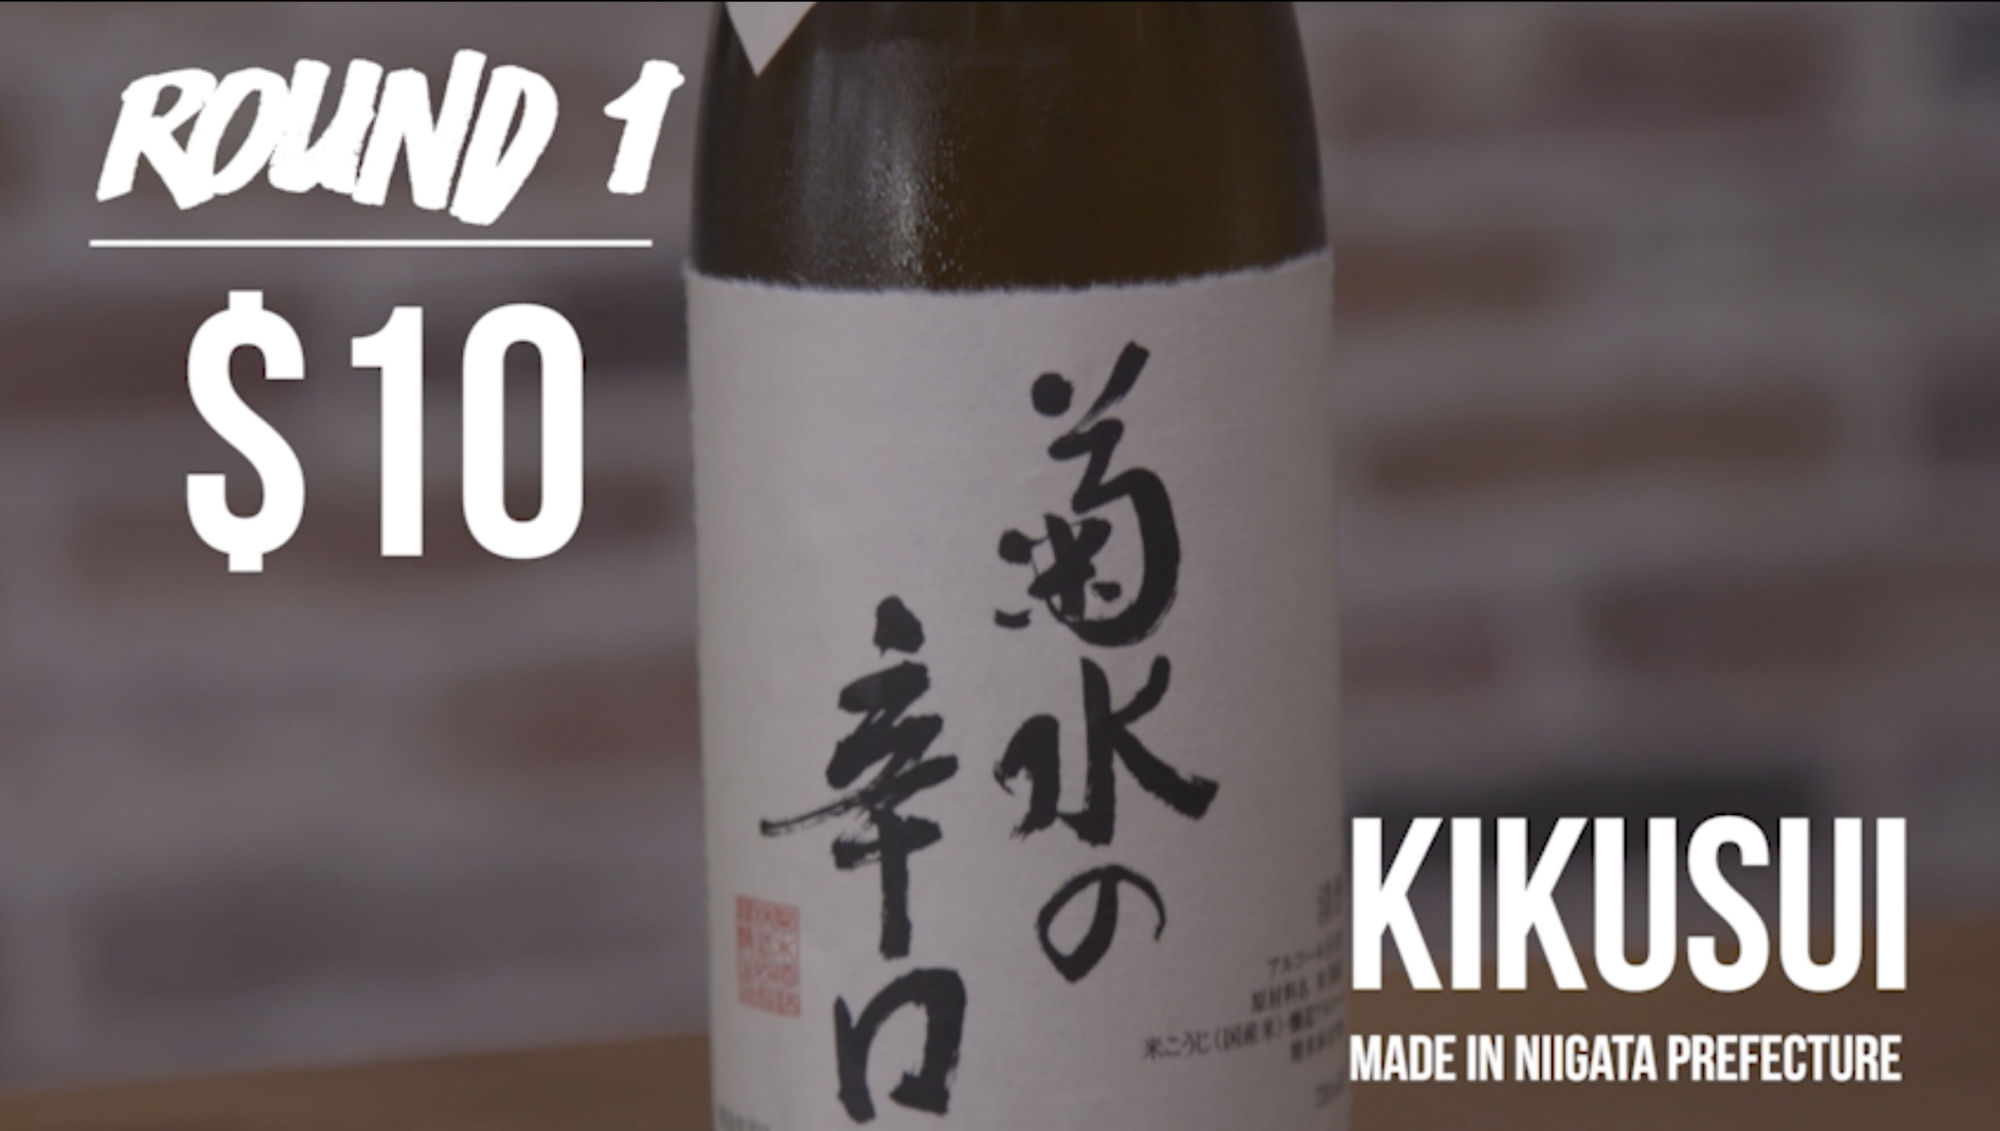 Screen-Shot-2017-07-15-at-5.00.20-PM-2000x1131 $120 vs $1 Sake What's the Difference?